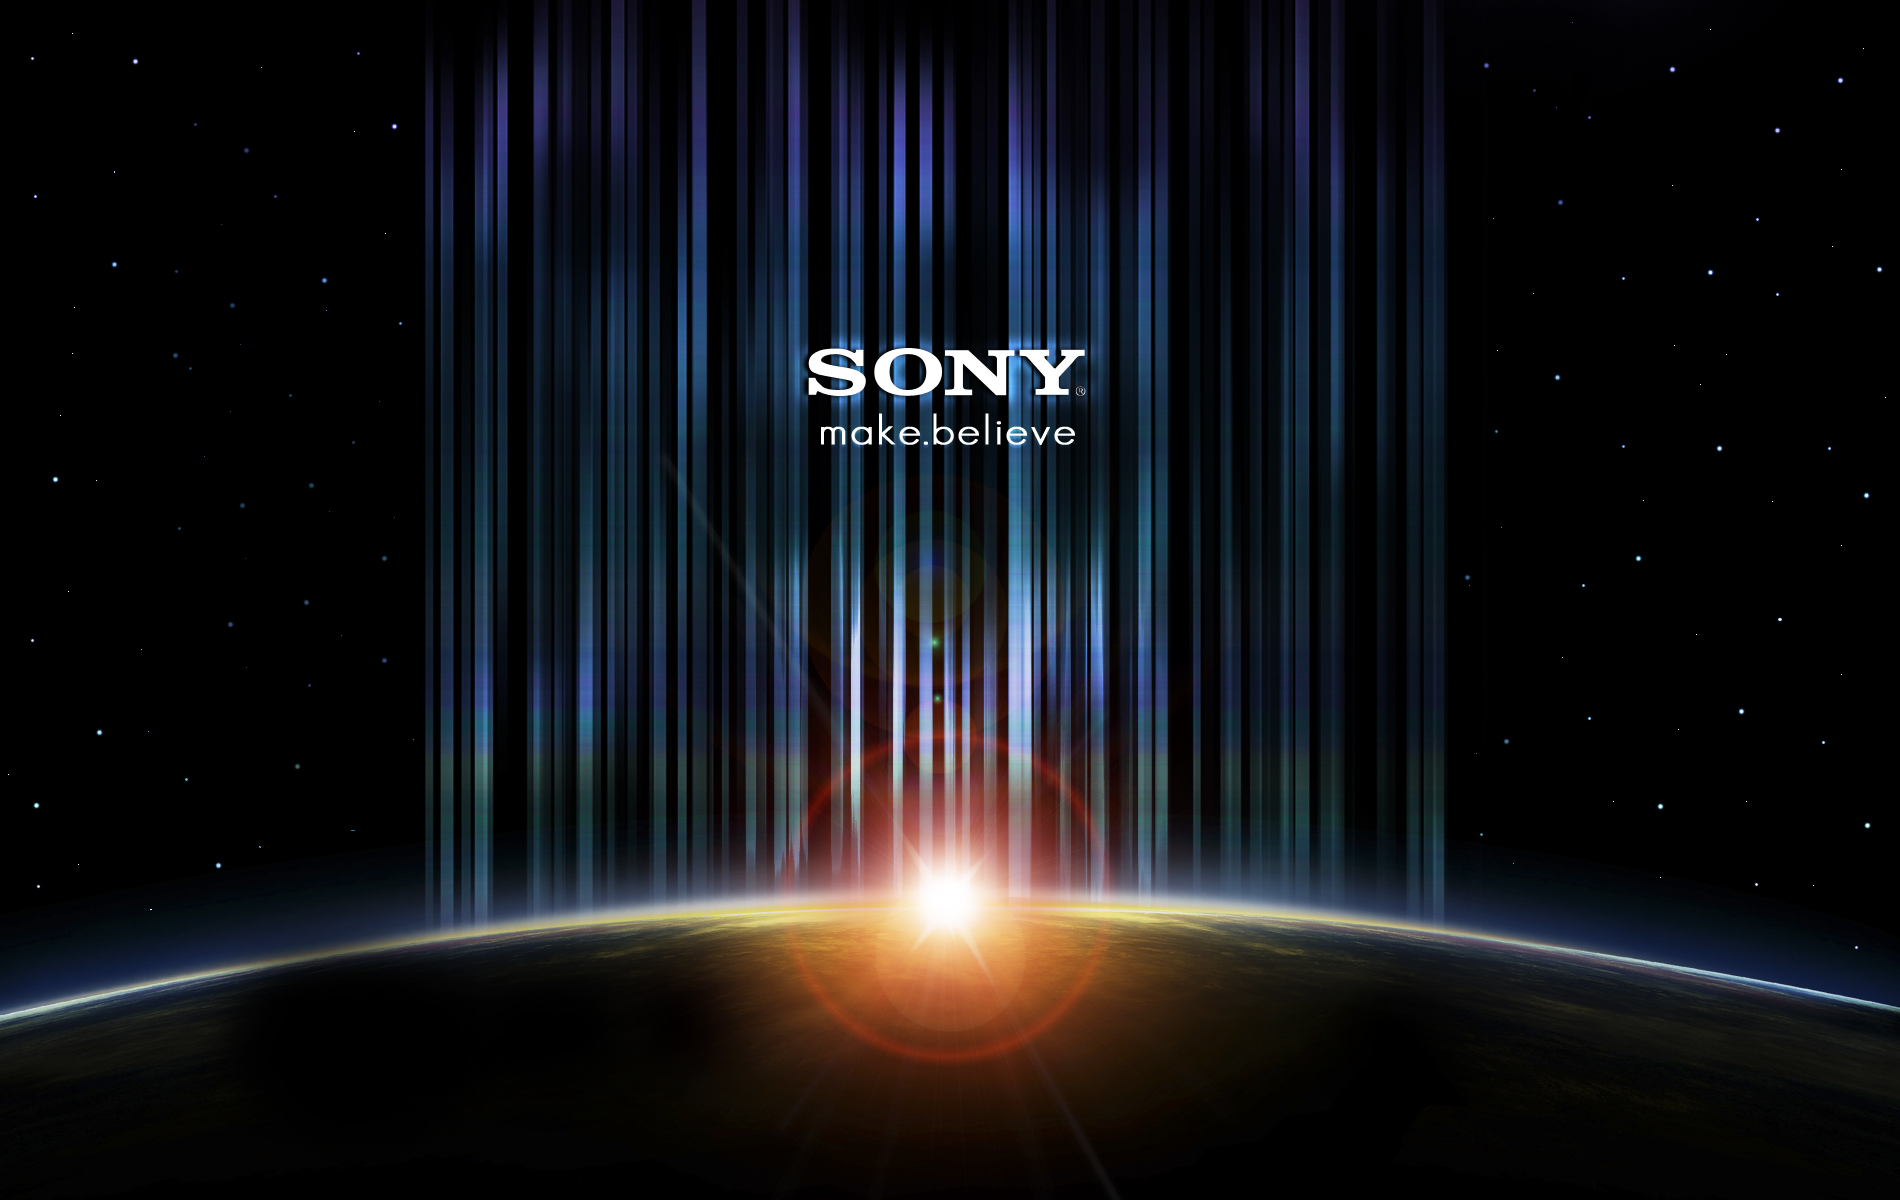 stunning sony wallpaper 23300